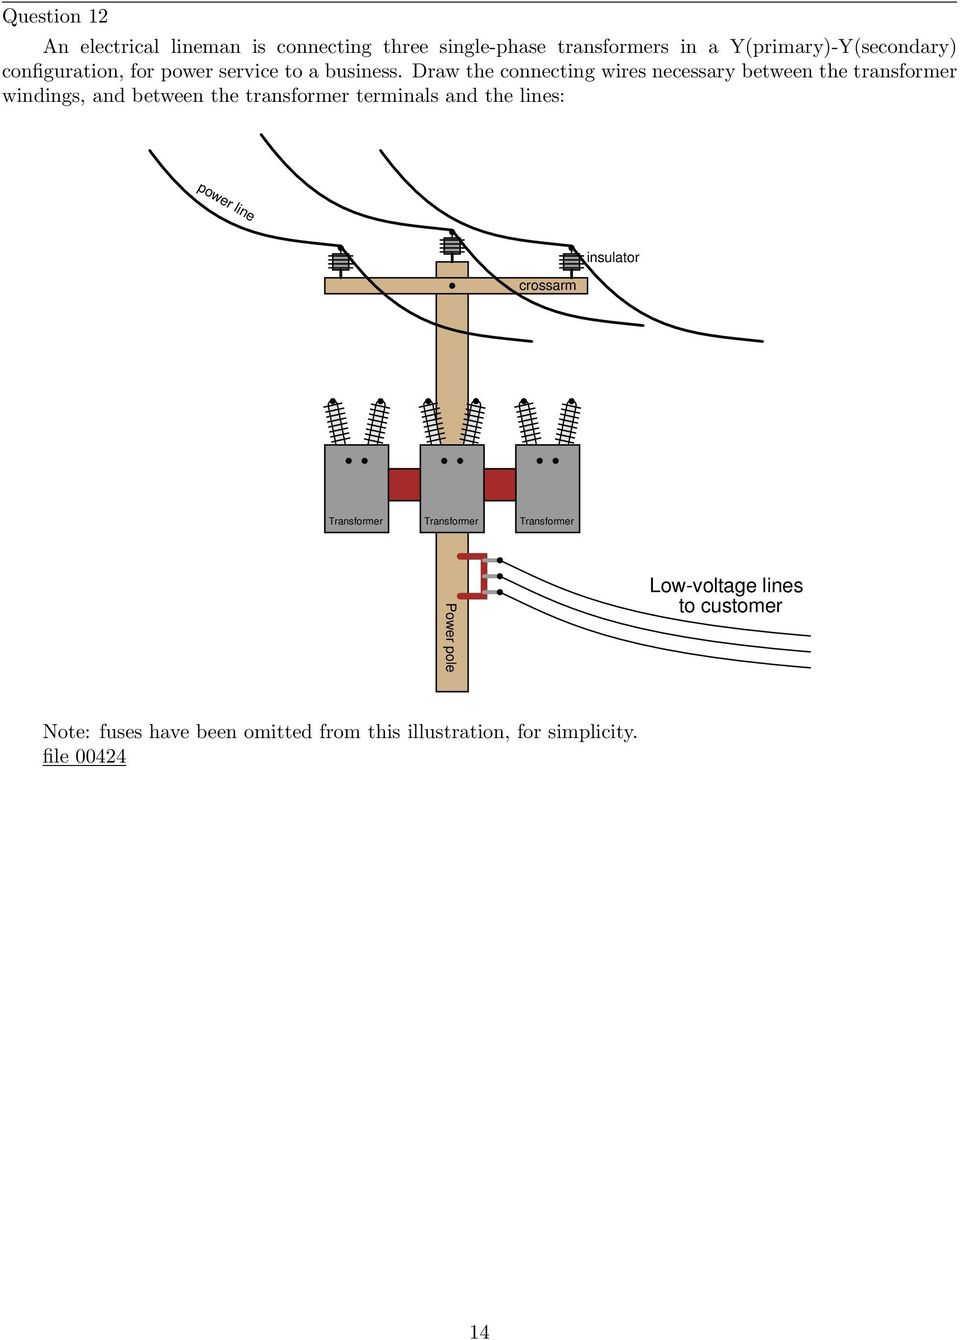 medium resolution of draw the connecting wires necessary between the transformer windings and between the transformer terminals and